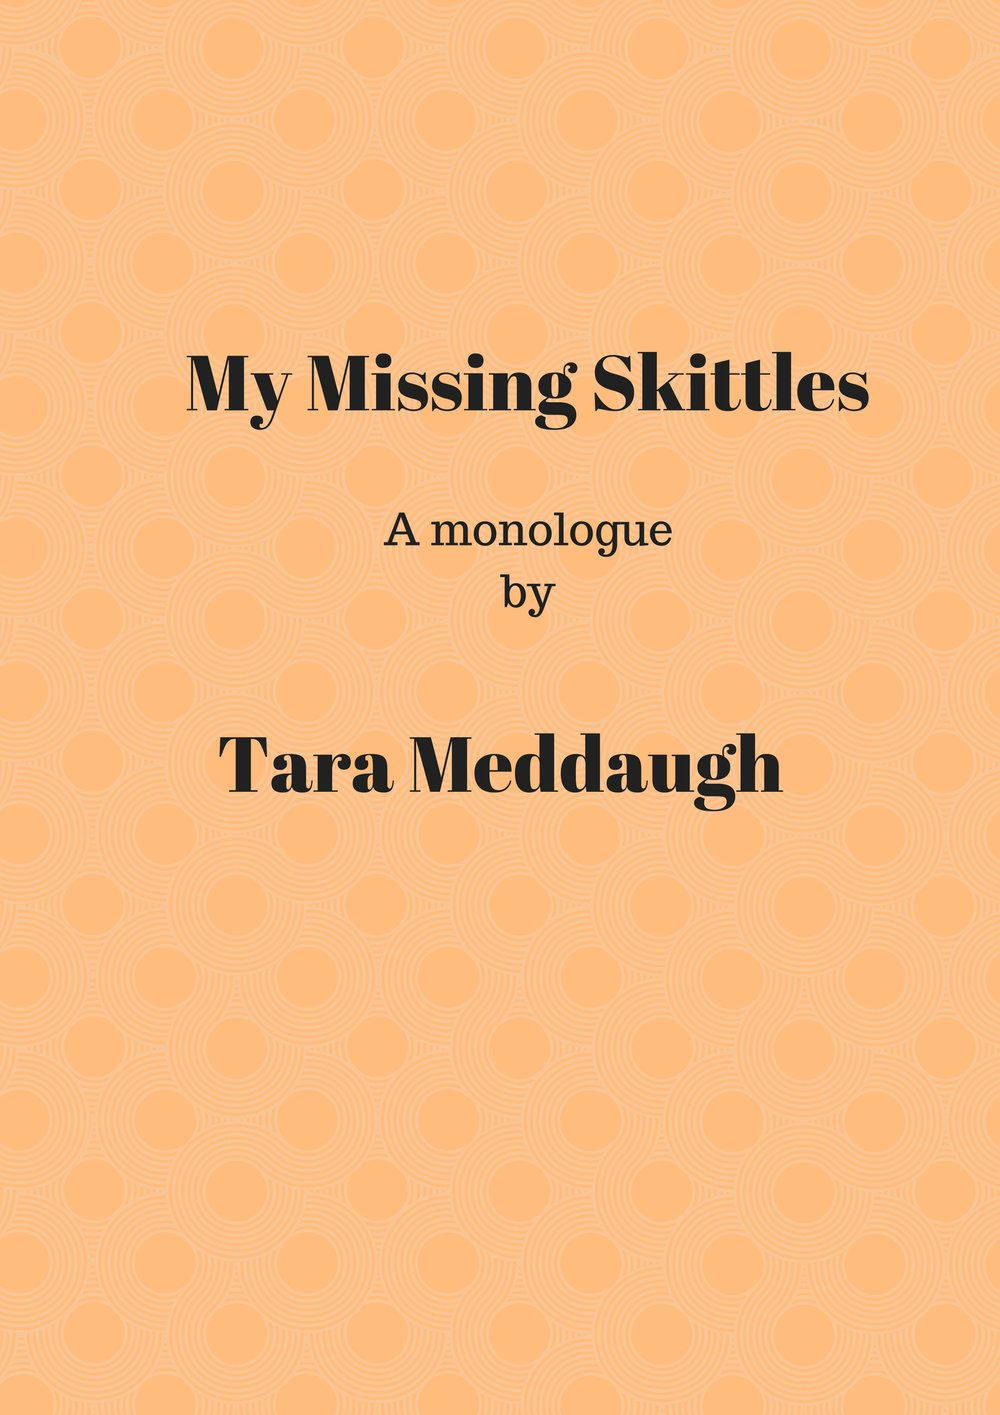 90 Of Parents Think Their Kids Are On >> Children Teen Comedic Halloween Monologue My Missing Skittles